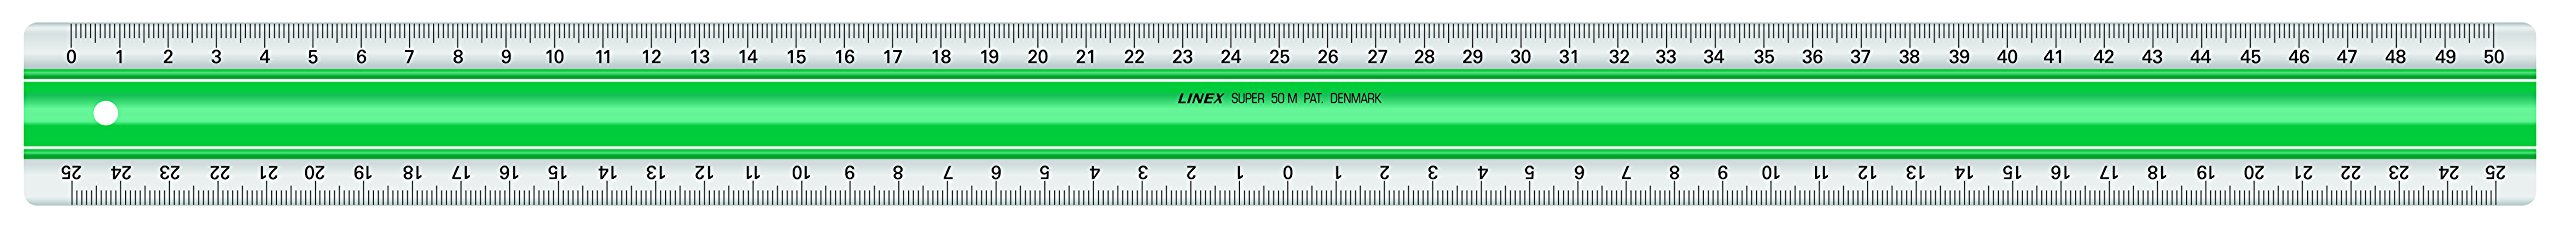 Linex 100202518 S50MM Series Super Acrylic Ruler Scale 25-0 MM 25 cm with Patented Slip Protection, Transparent